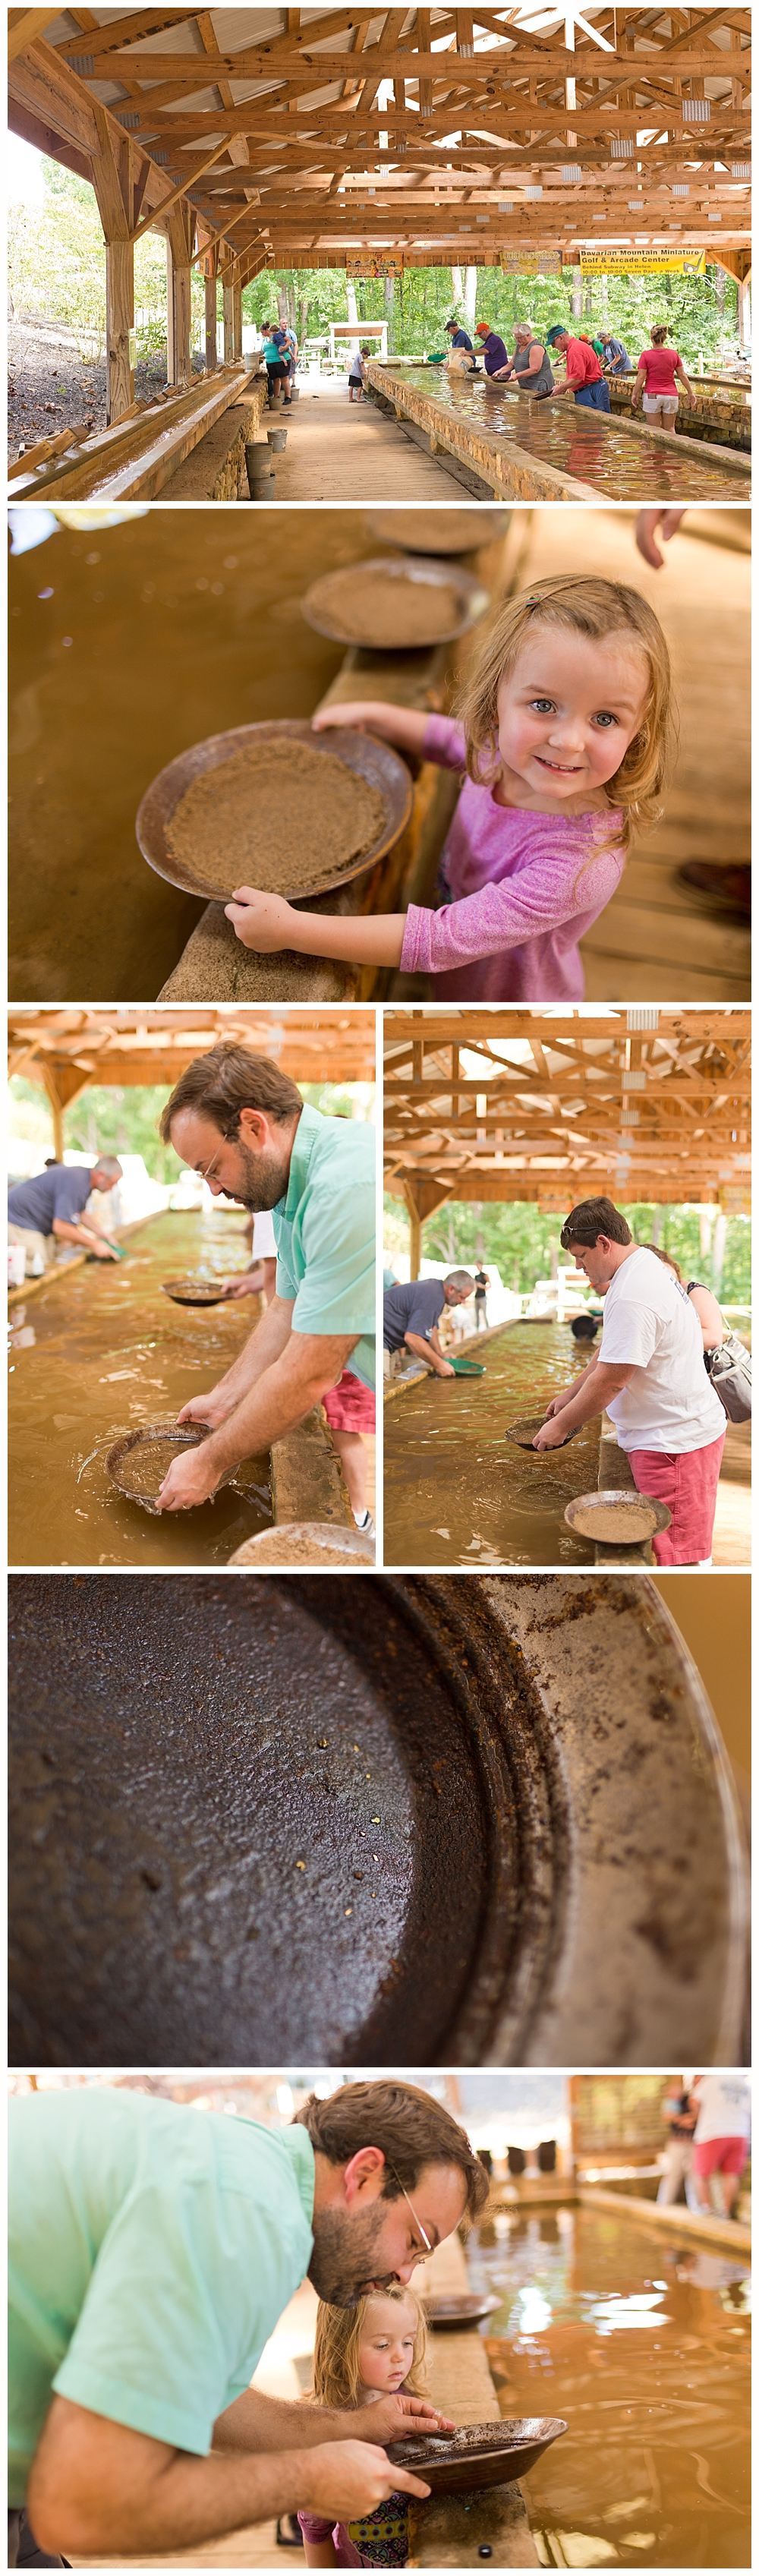 panning for gold at Crisson Gold Mine in Dahlonega, Georgia - family trip to North Georgia